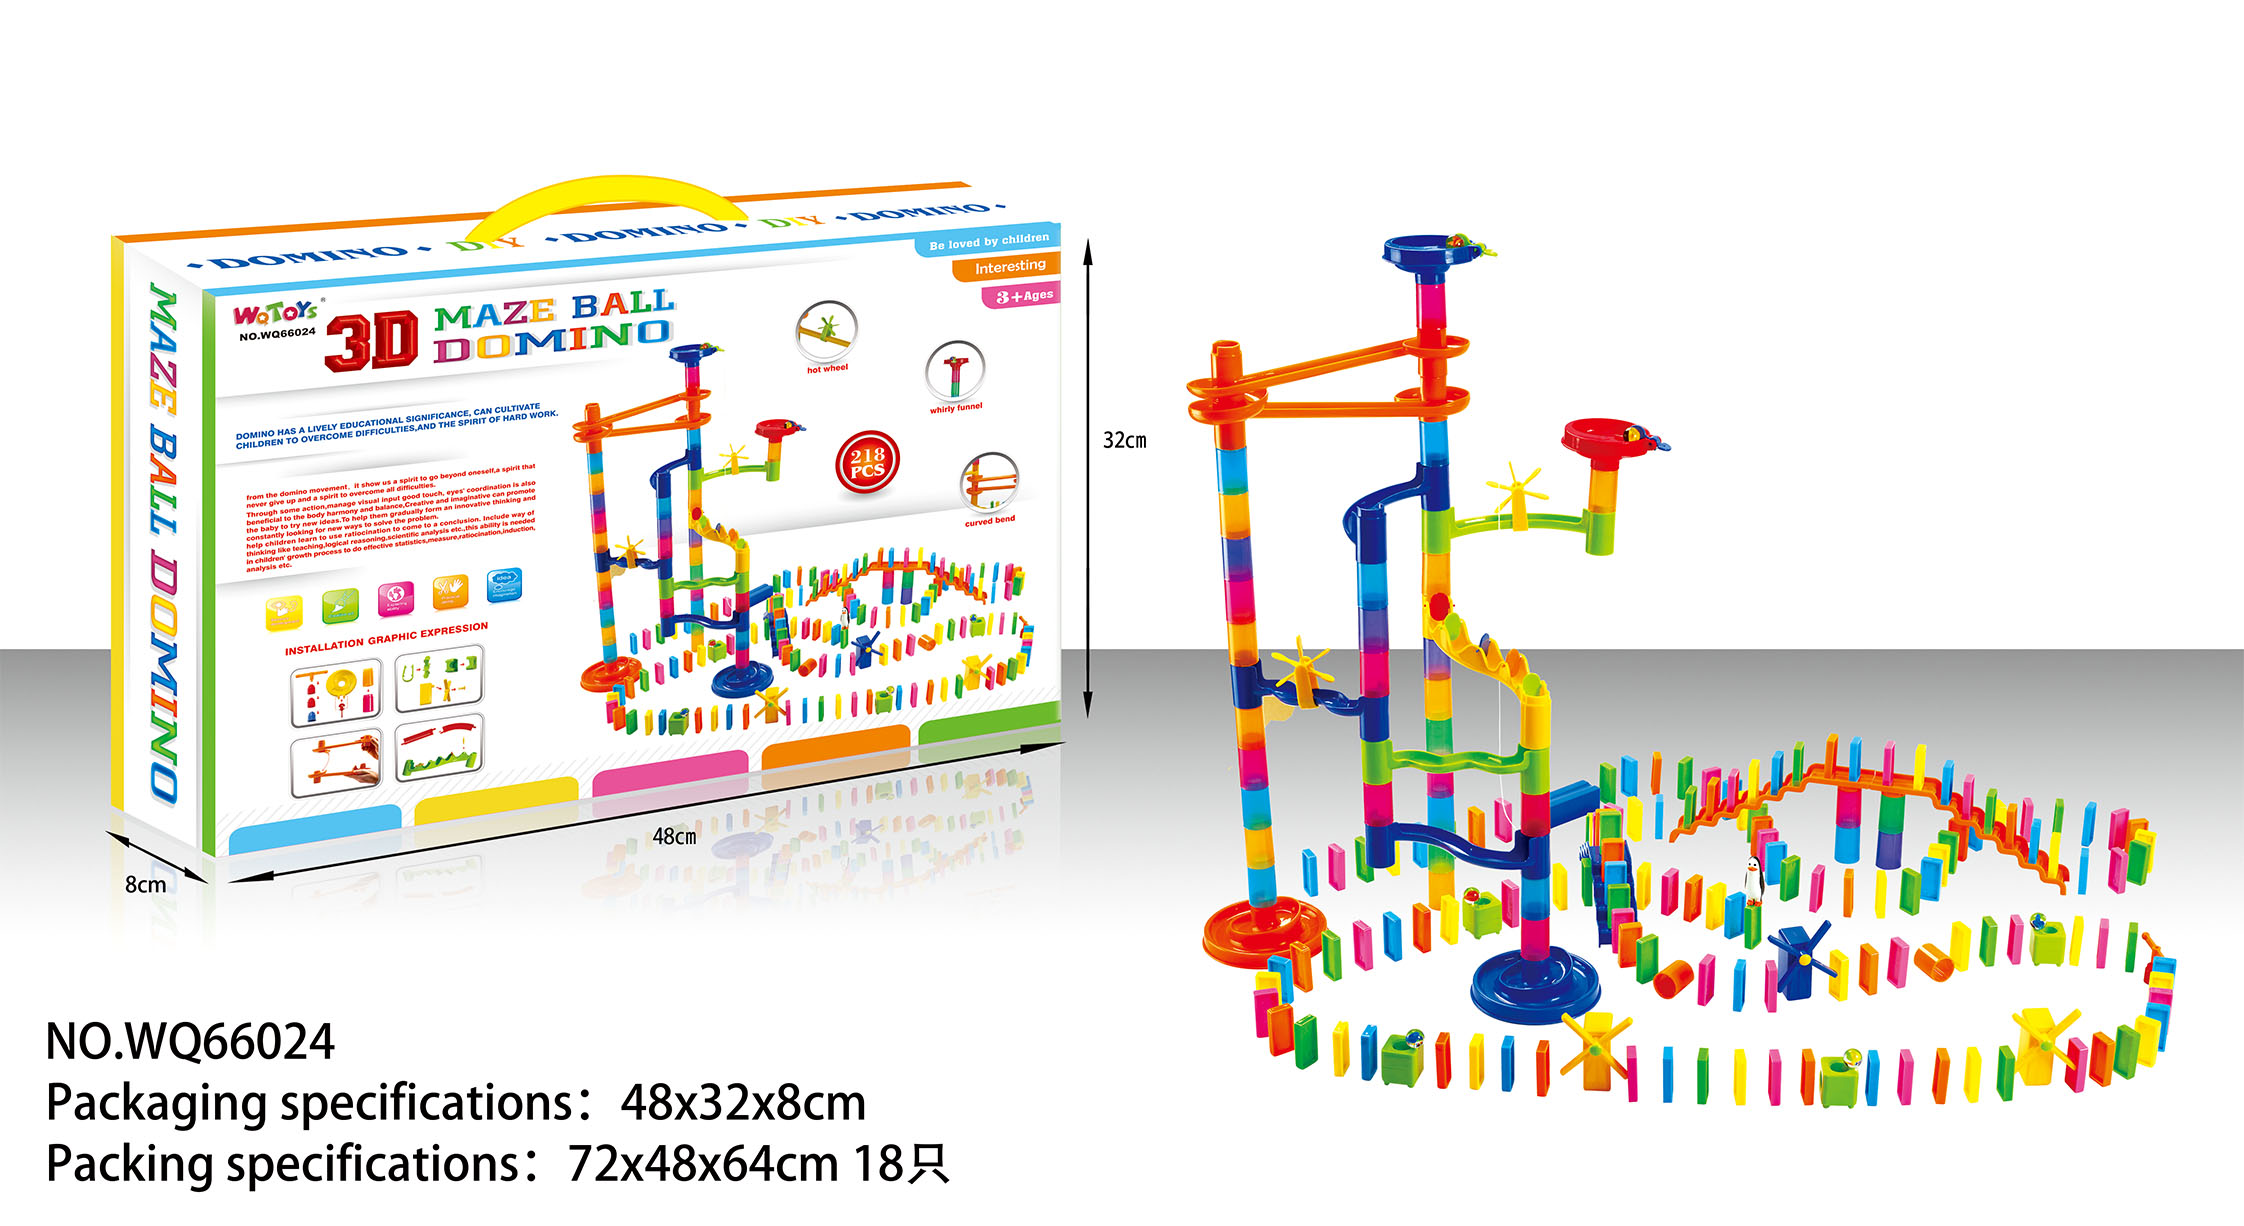 domino intelligence game 218 pcs 3d maze ball plastict educational toys